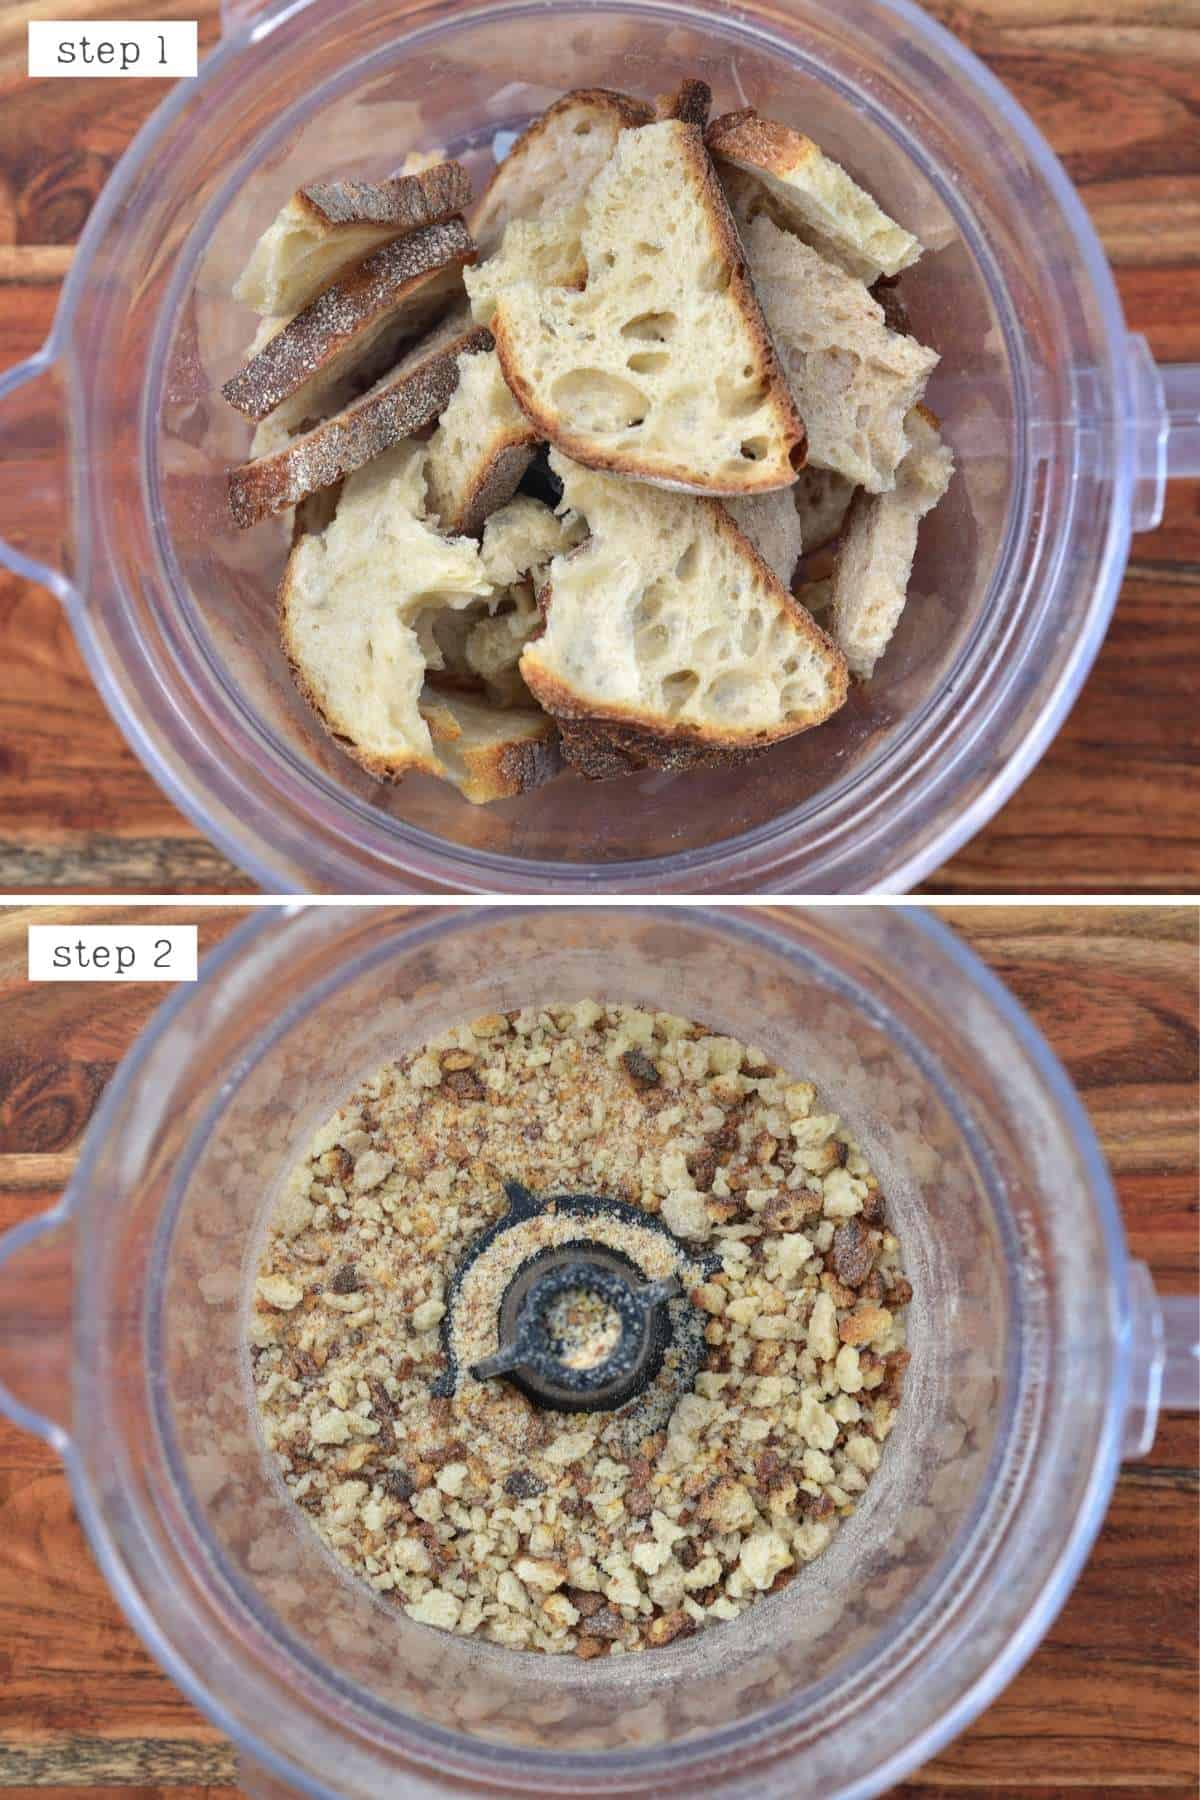 Steps for making breadcrumbs